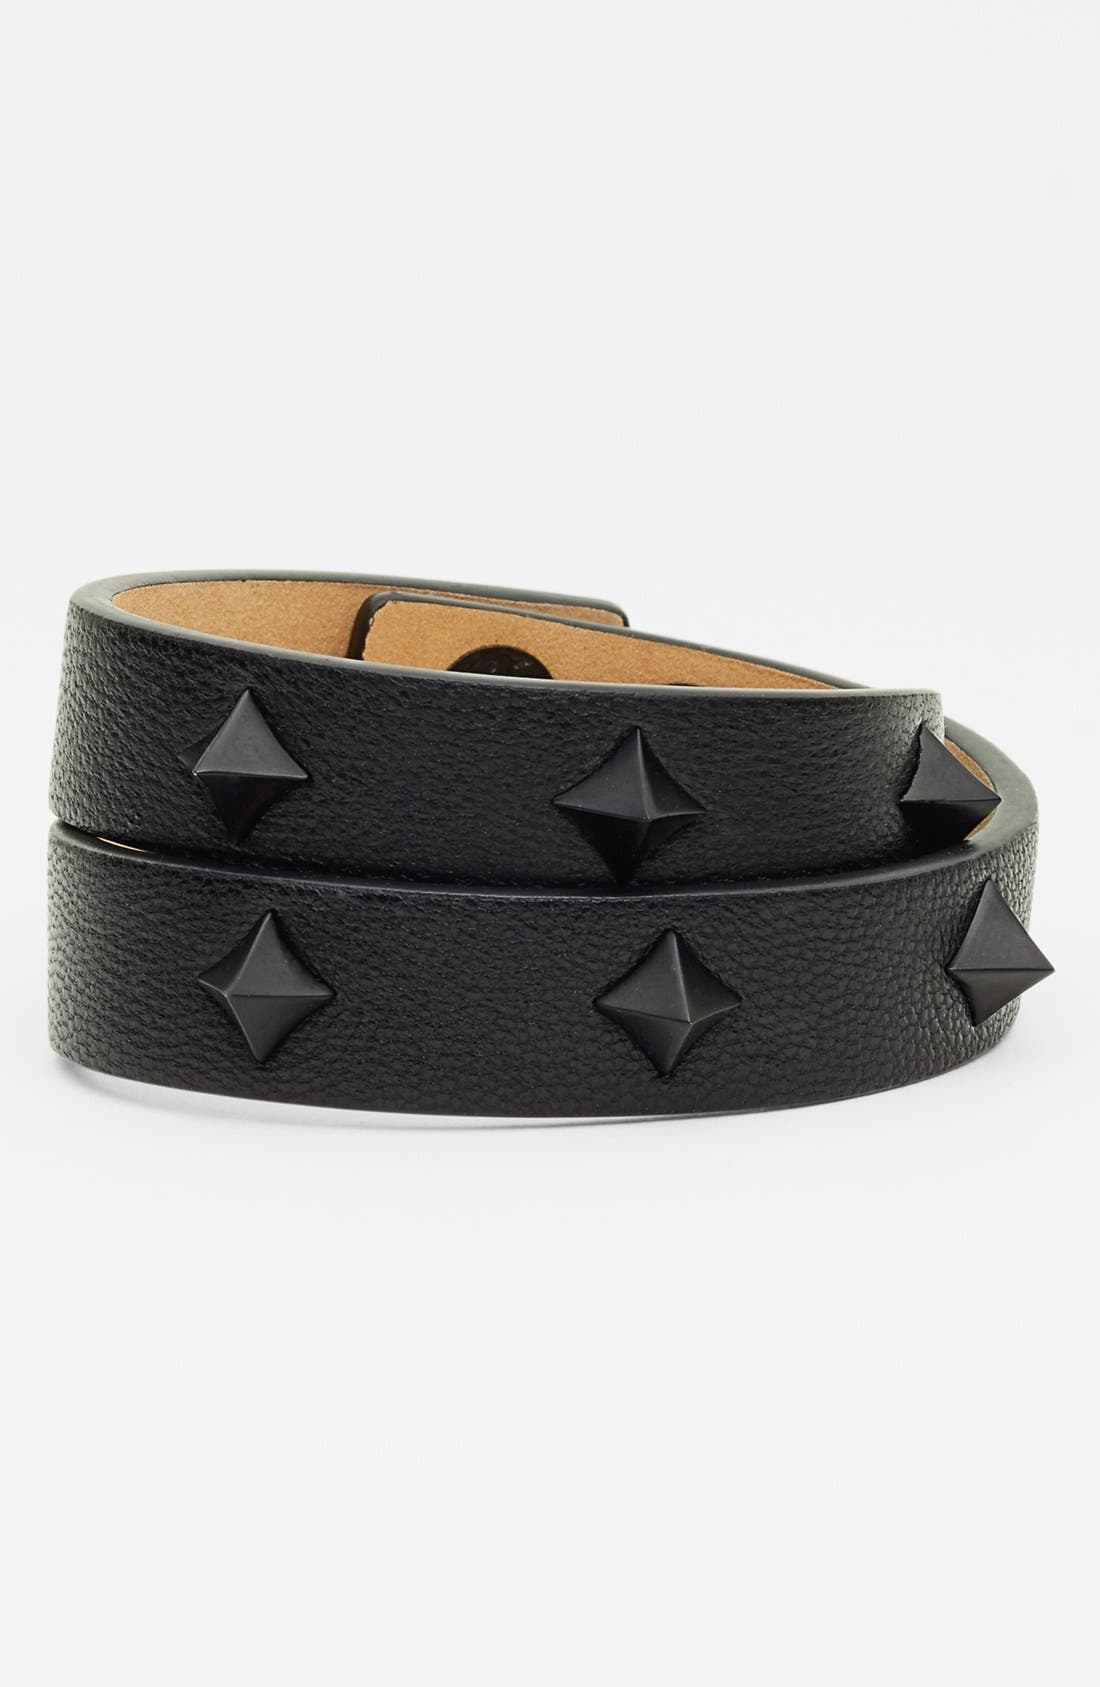 Main Image - Vince Camuto 'Tour of Duty' Studded Leather Wrap Bracelet